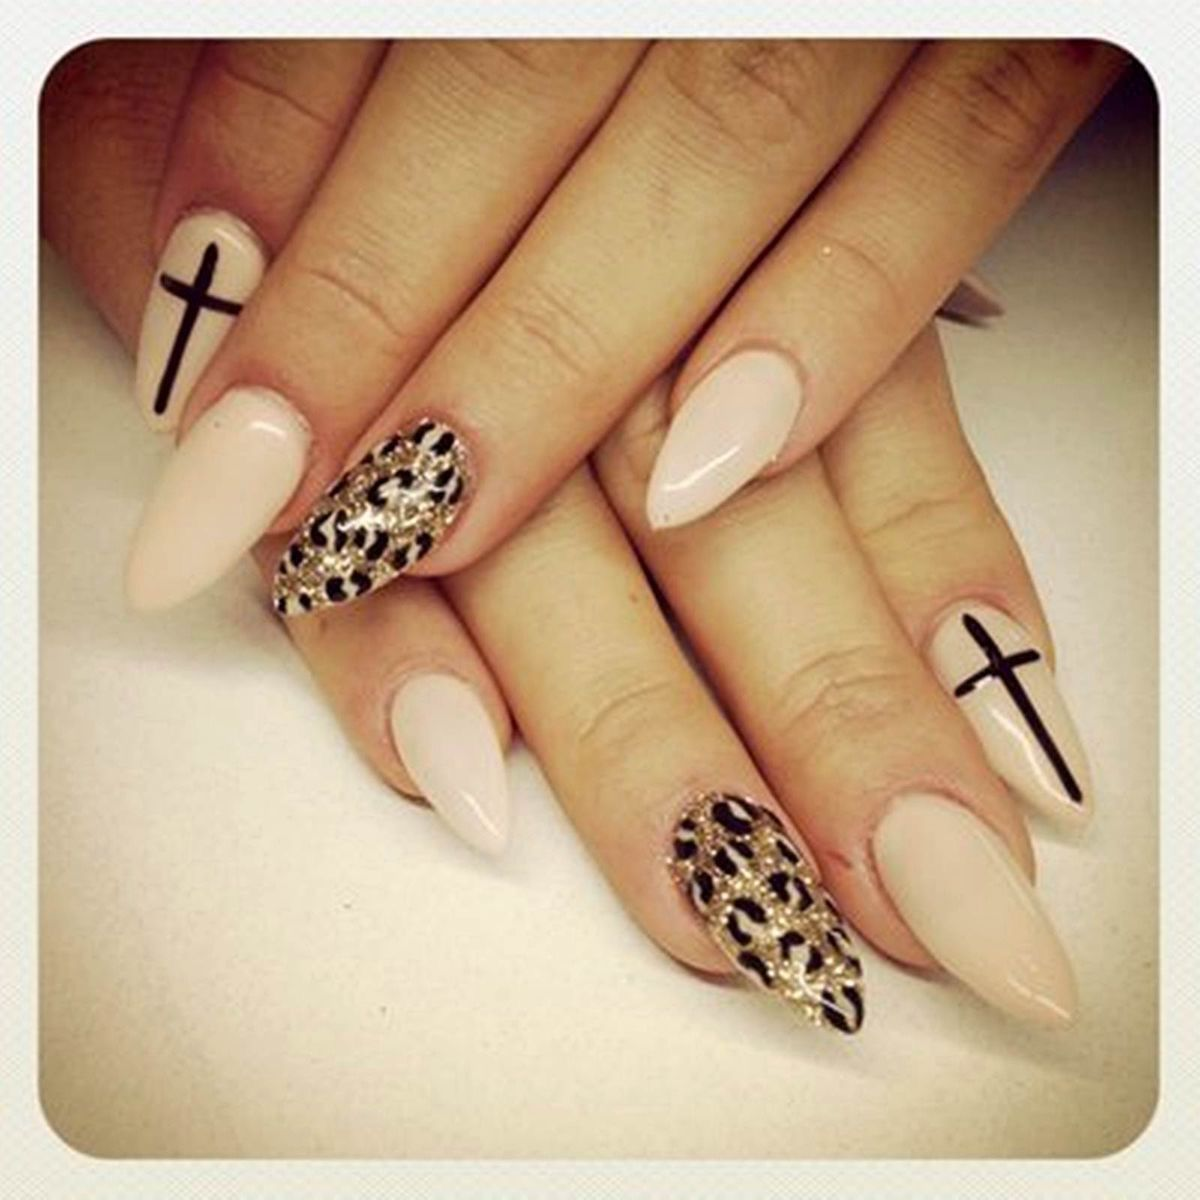 Pin by Vanessa Lugo on Nails | Pinterest | Finger nail art, Pretty ...